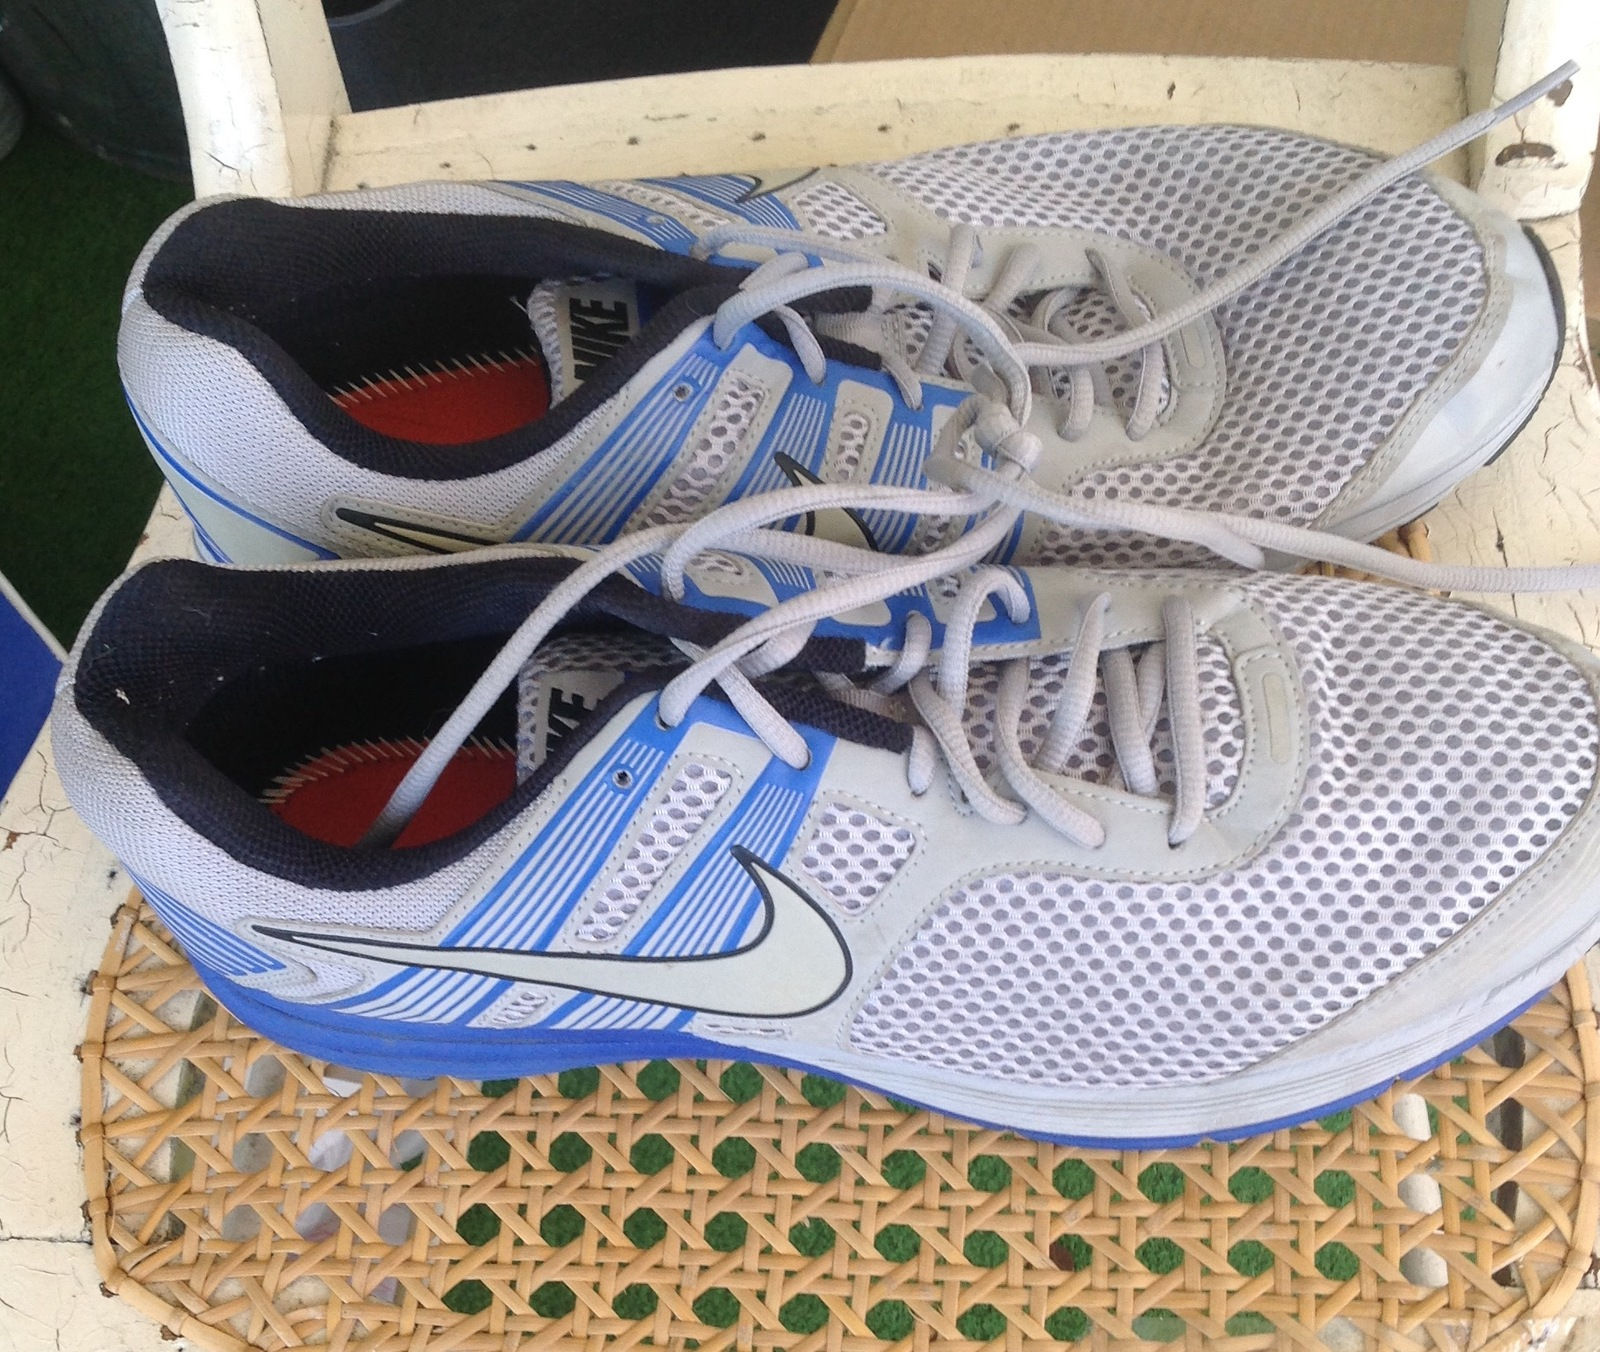 5acd48217236 Nike Zoom Structure 16 Men's and 50 similar items. Men s white blue zoom